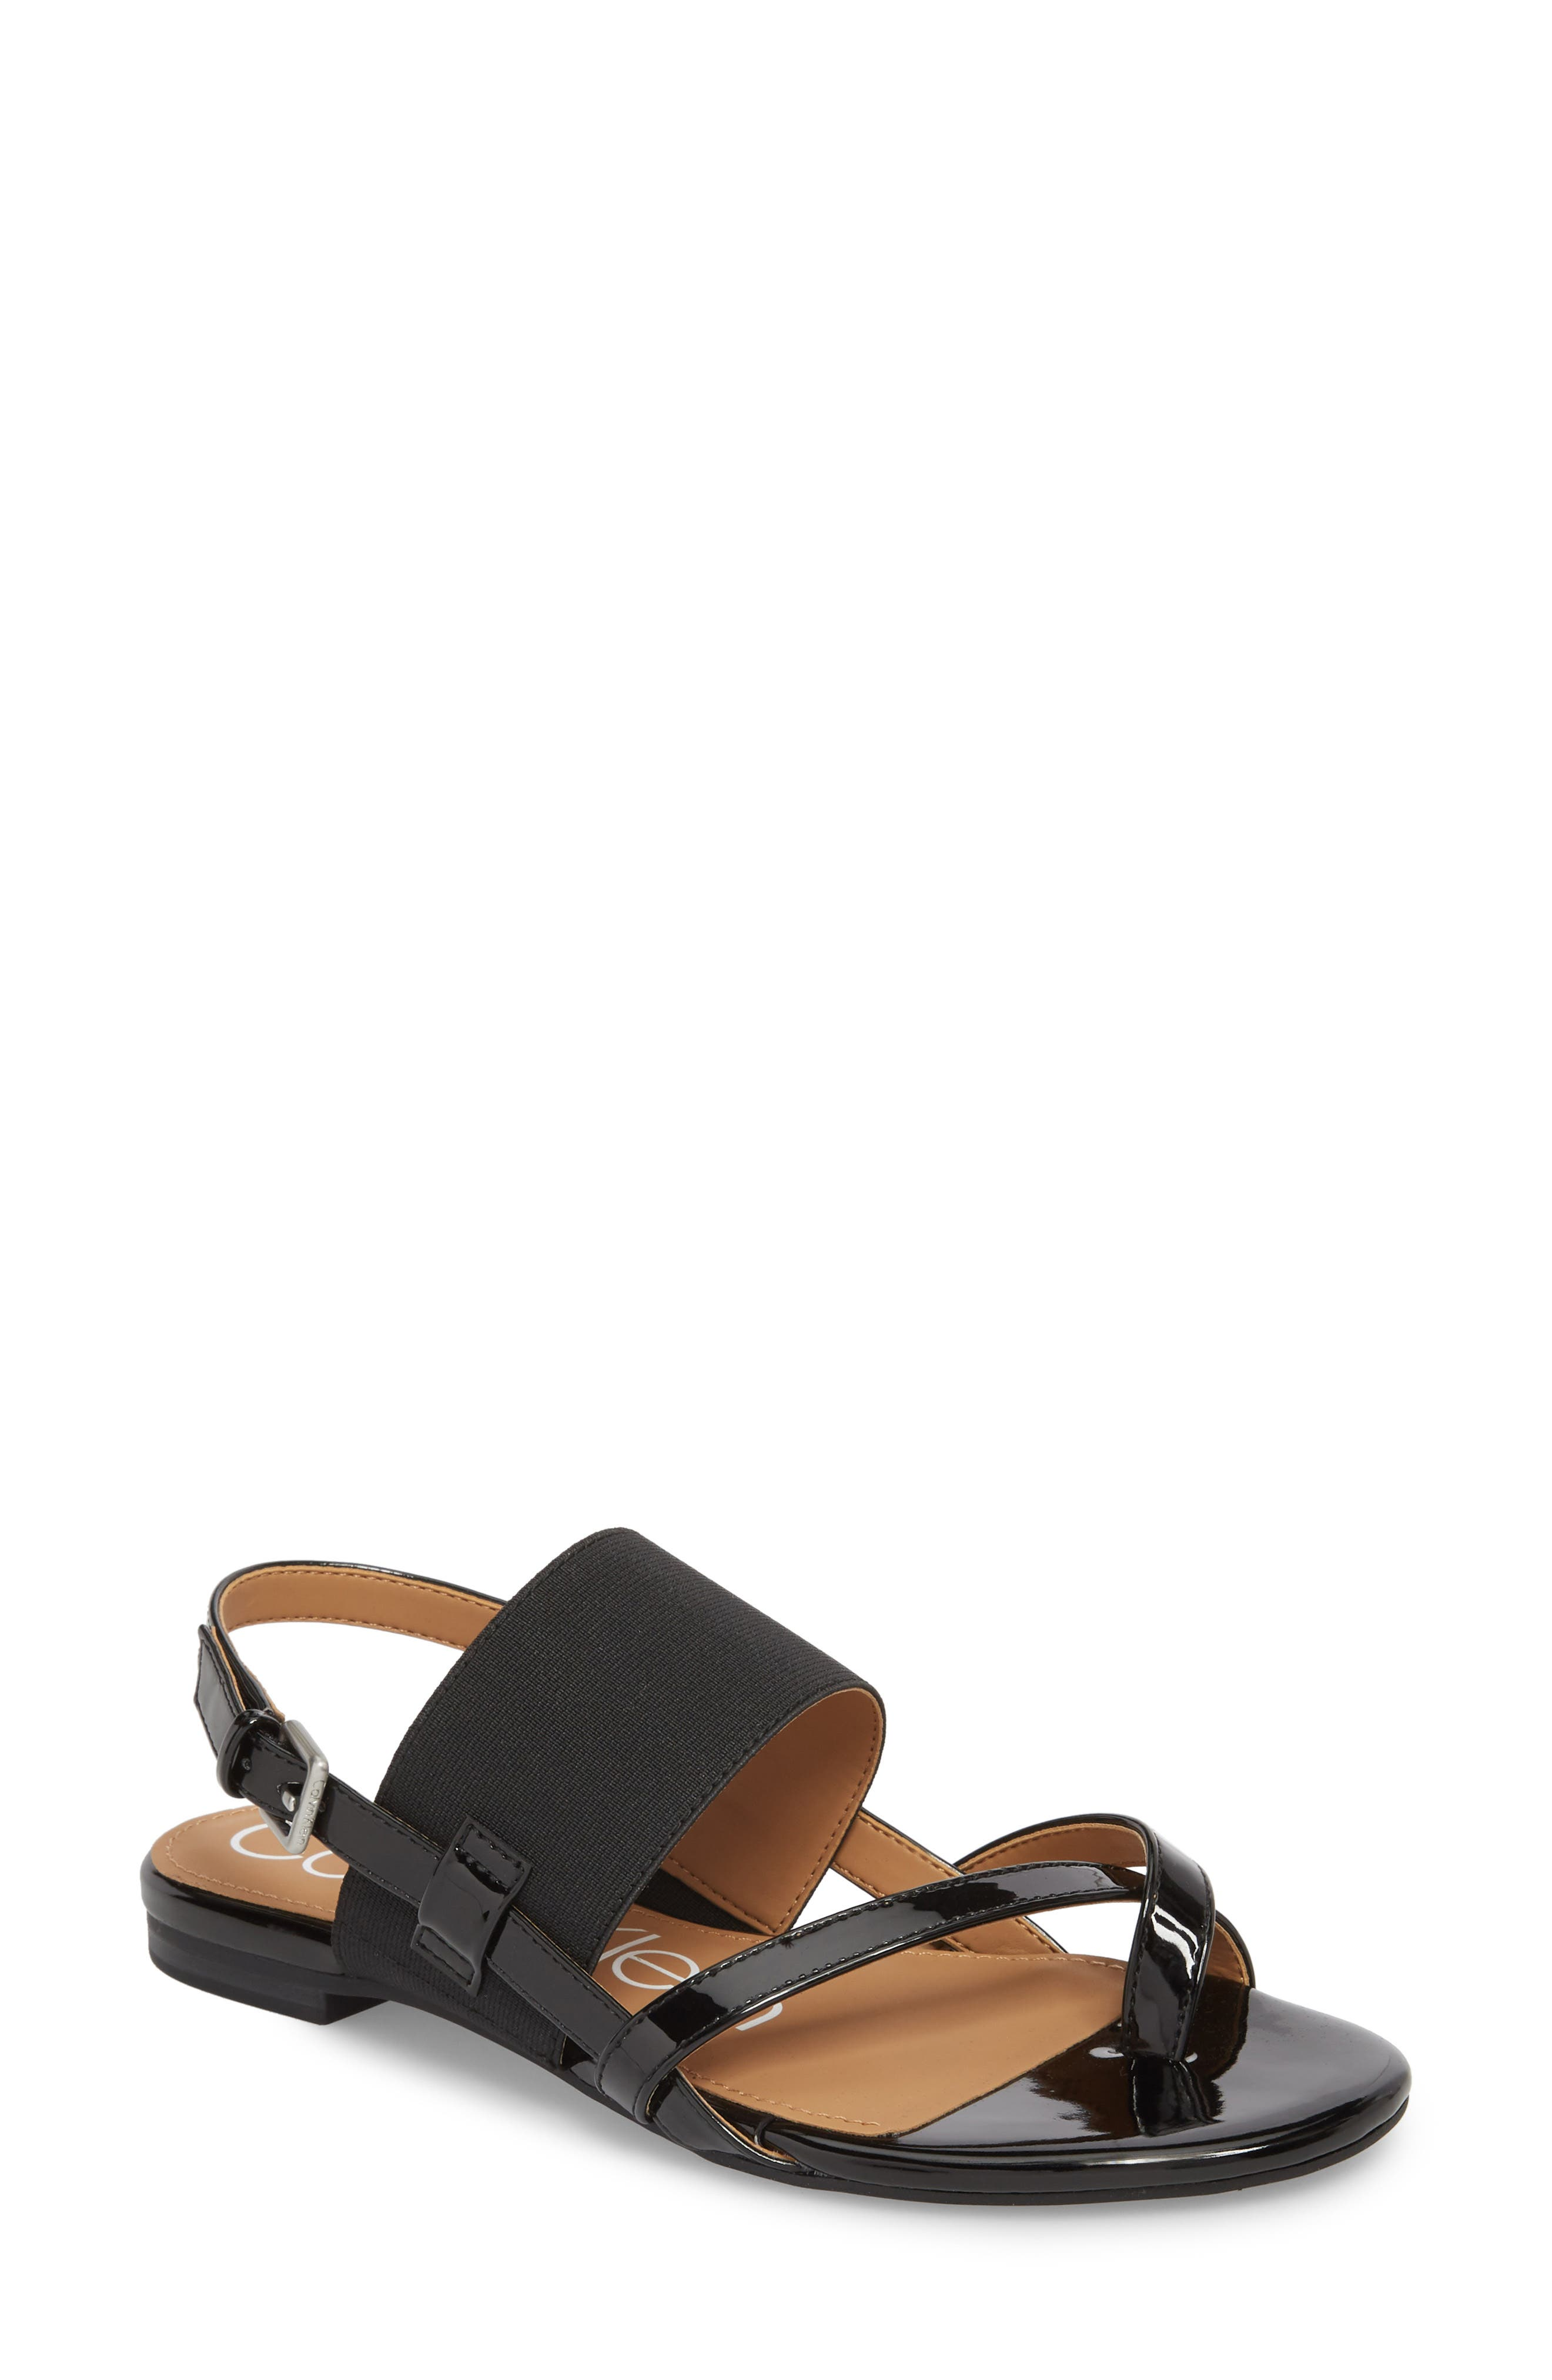 CALVIN KLEIN Berry Sandal, Main, color, 001